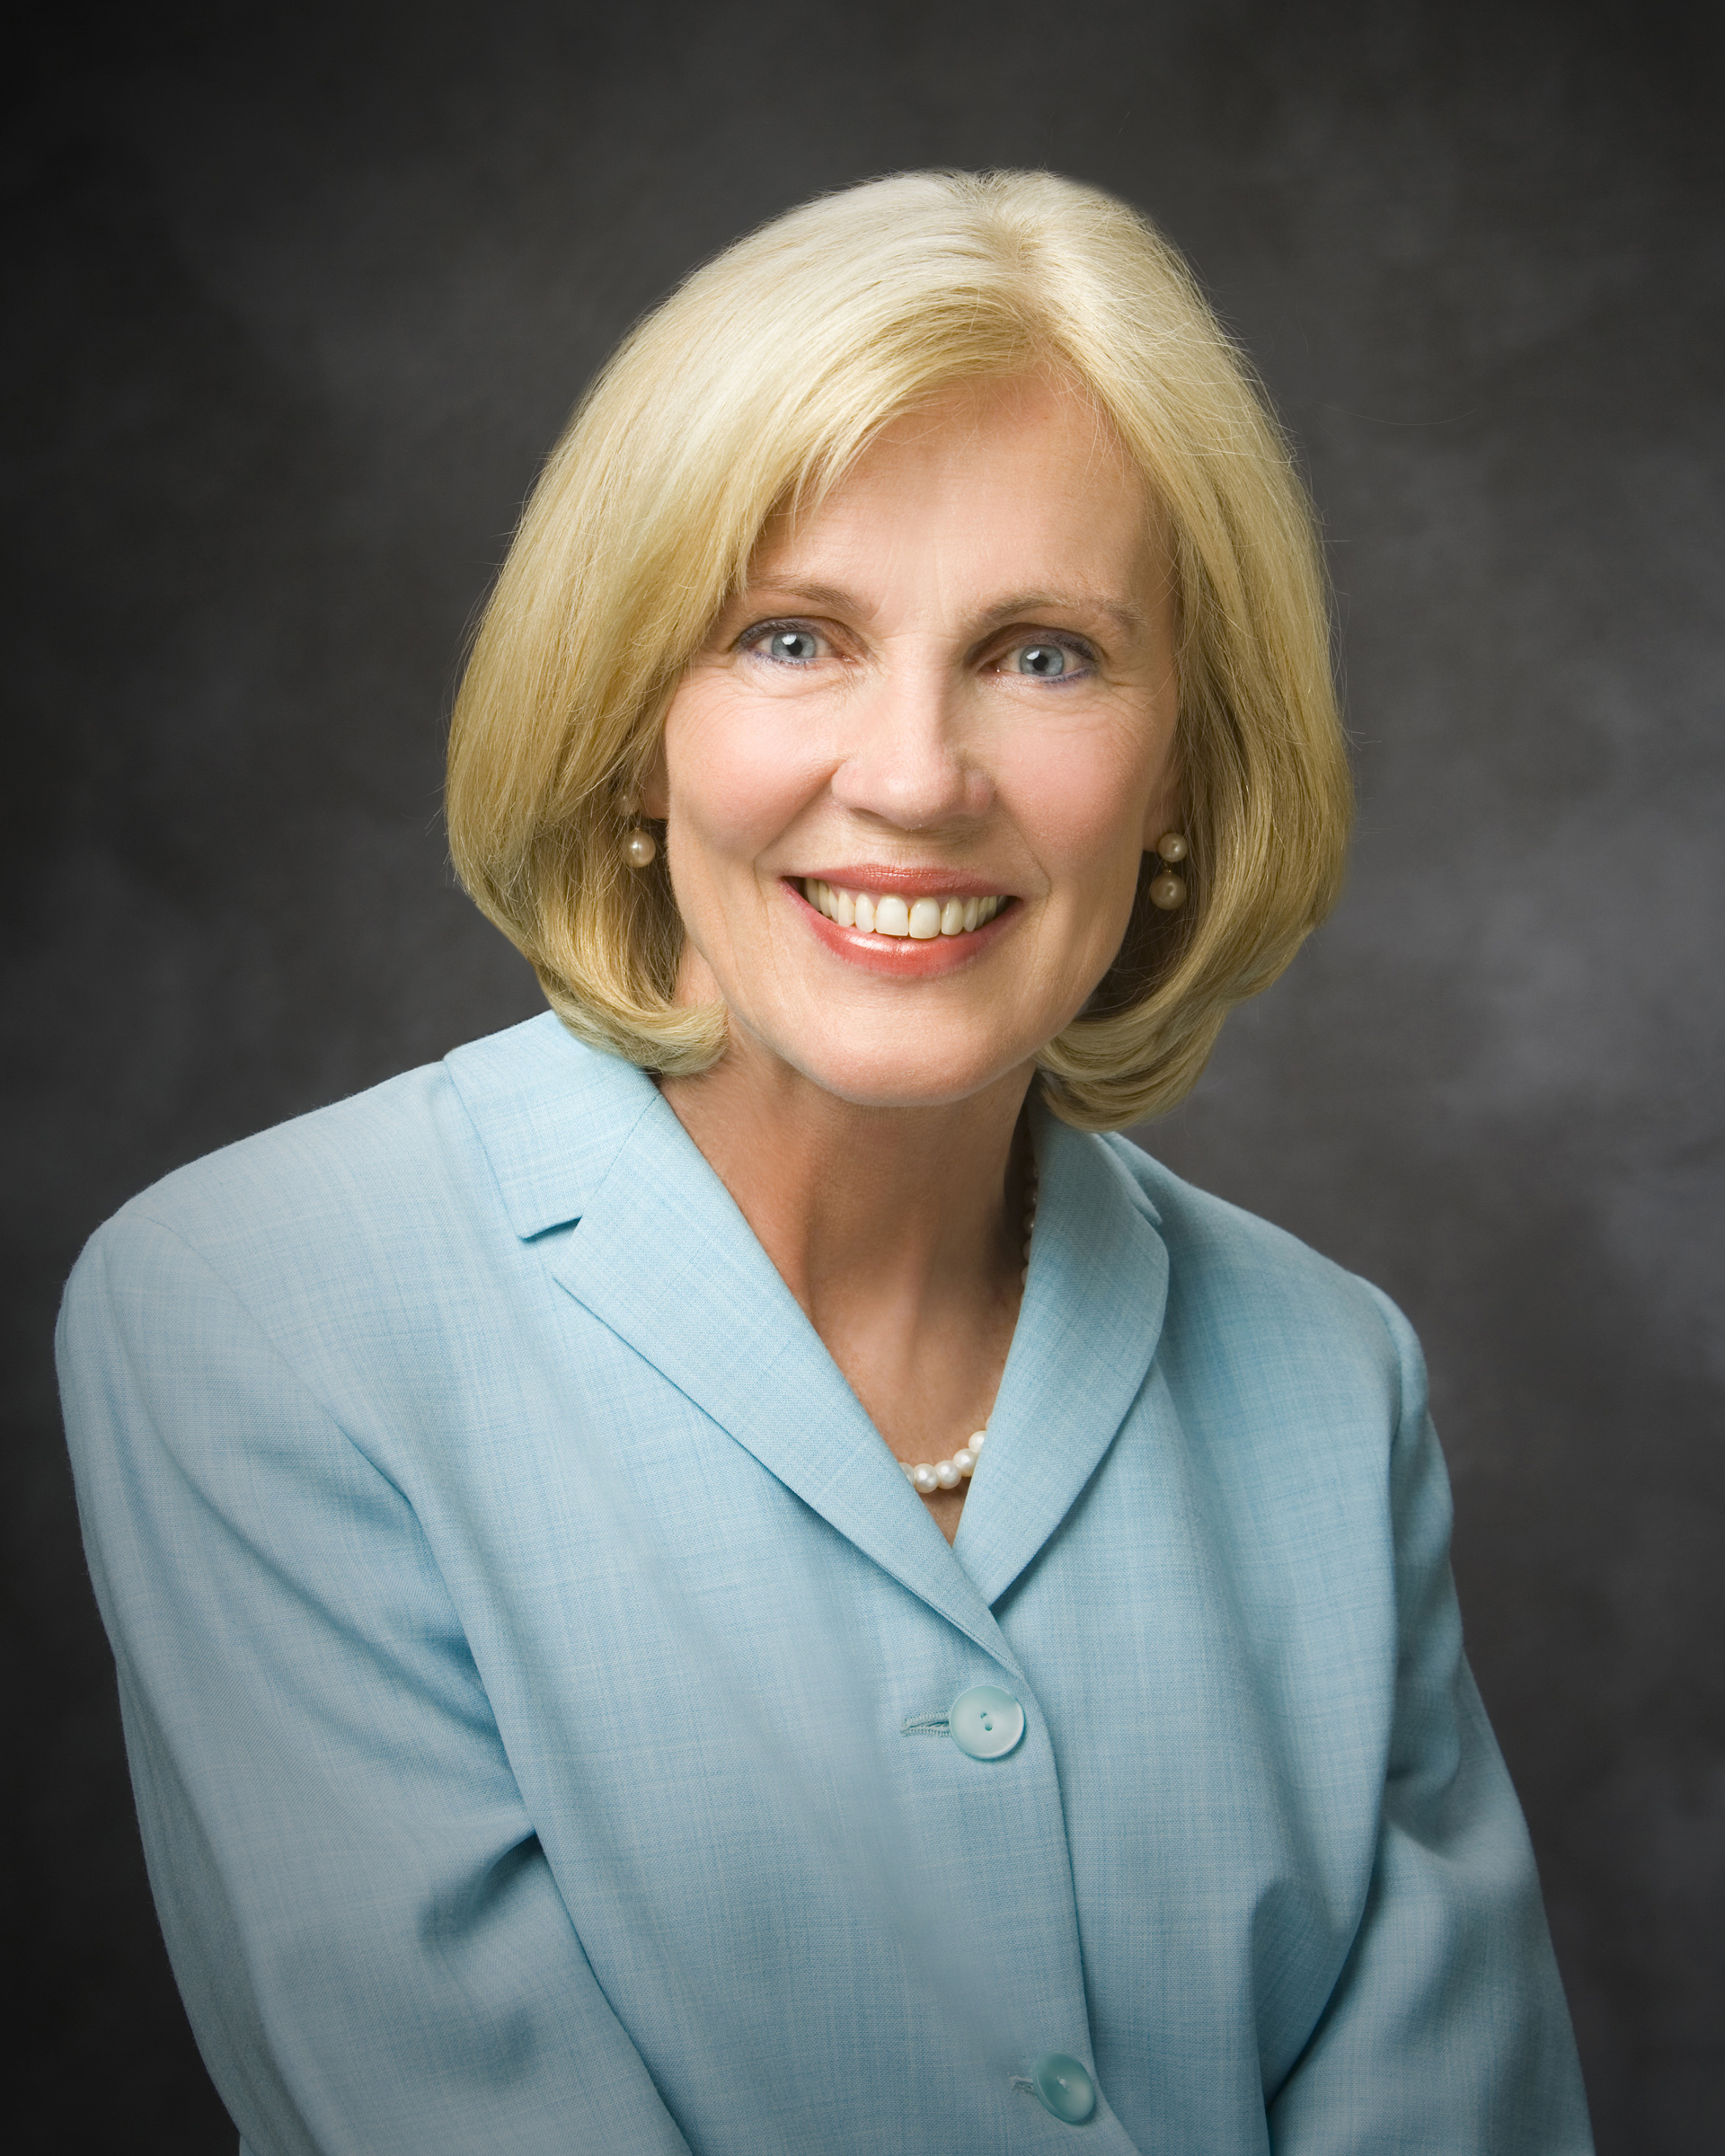 Sister Elaine Dalton To Keynote This Summer's Time To Blossom Conference